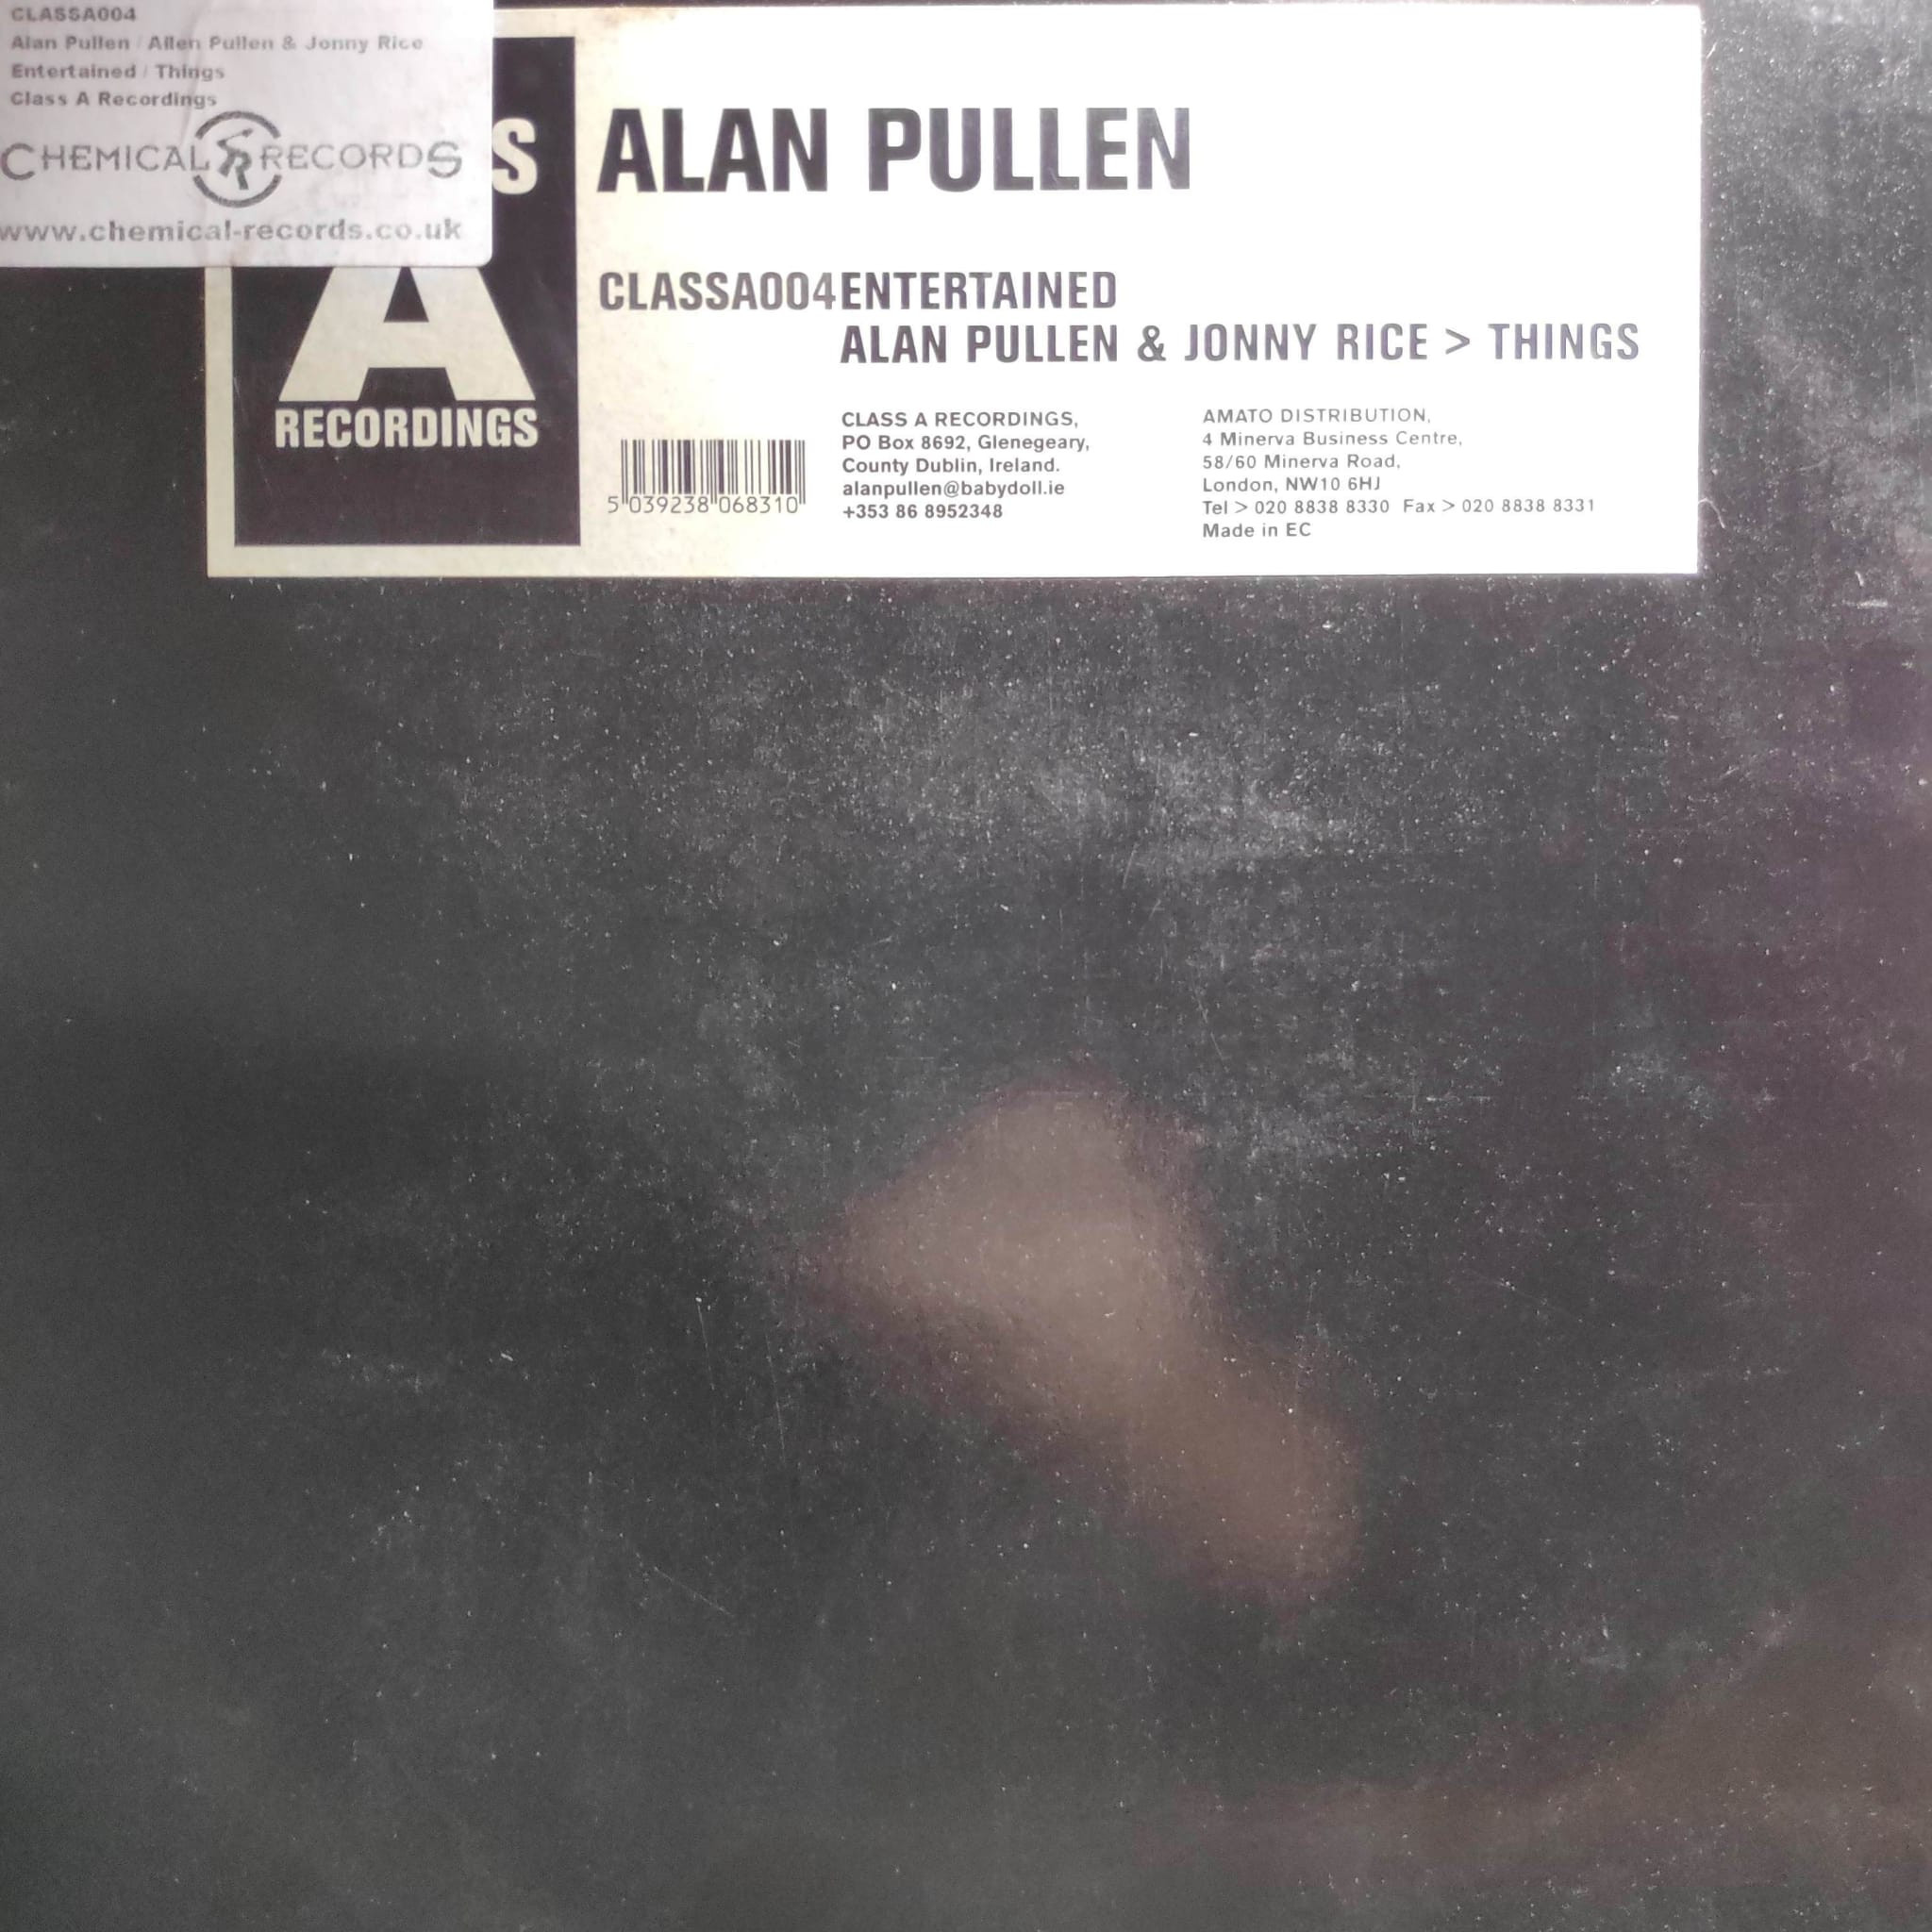 (24821) Alan Pullen & Johnny Rice – Entertained / Things